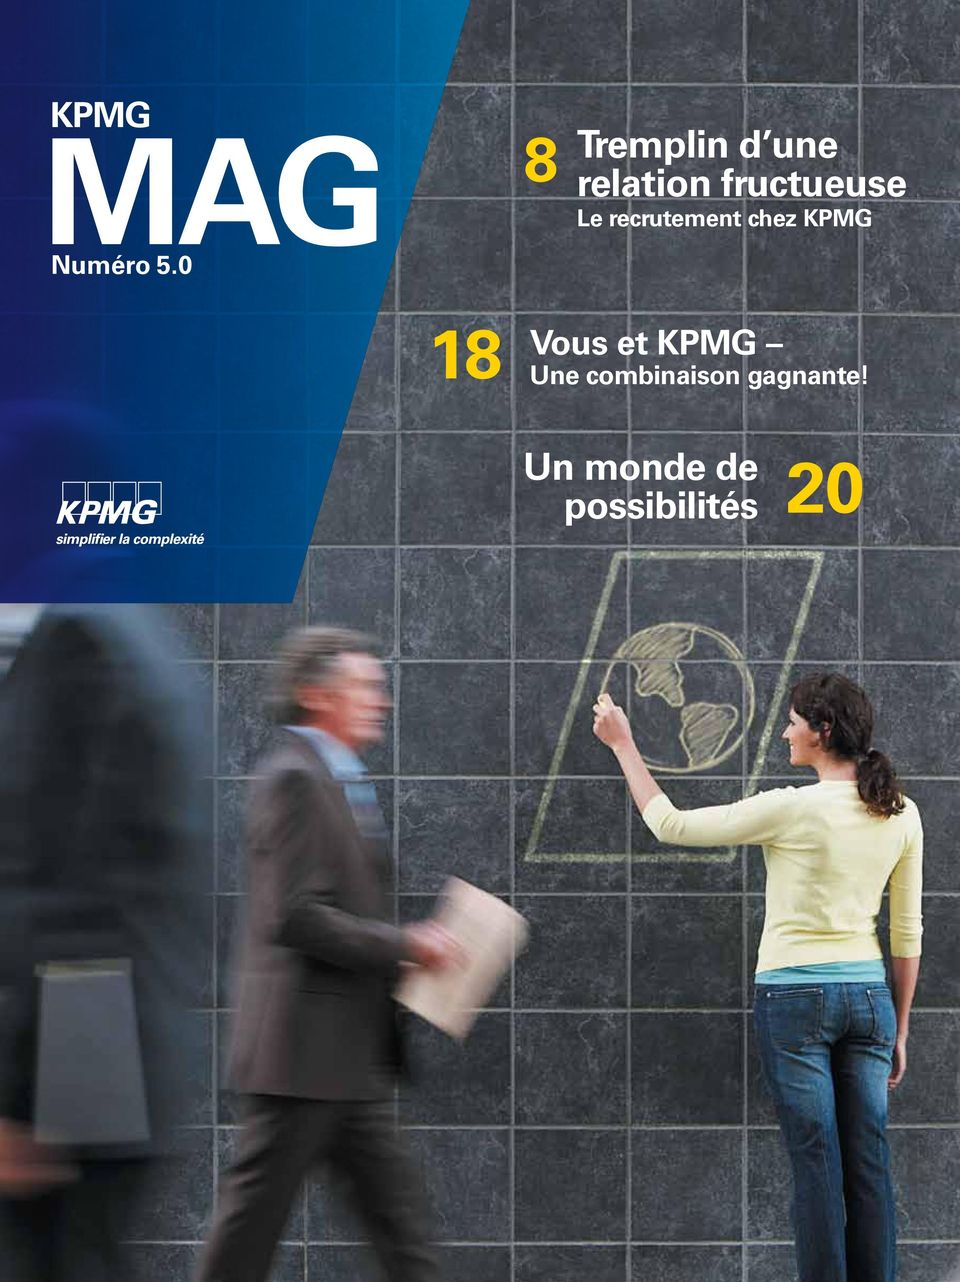 fructueuse Le recrutement chez KPMG